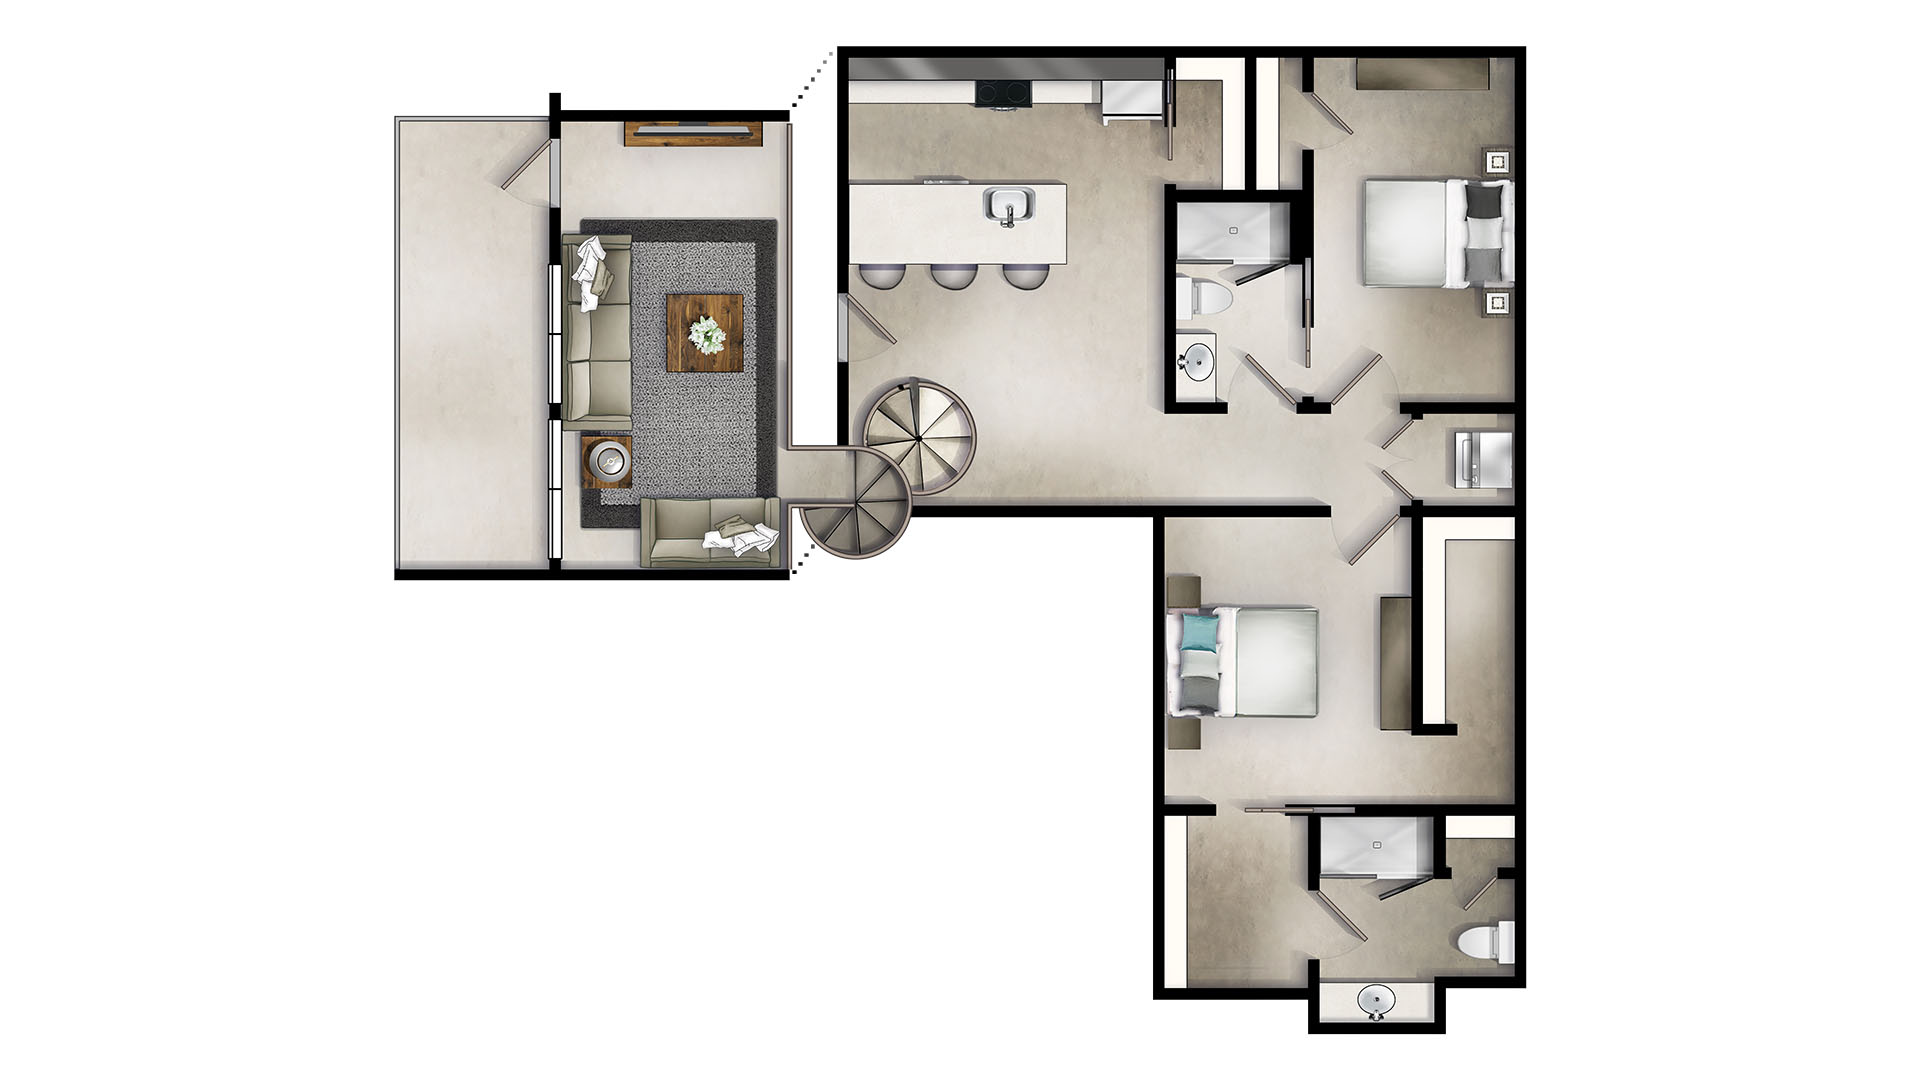 Floor Plans – The Denham Building